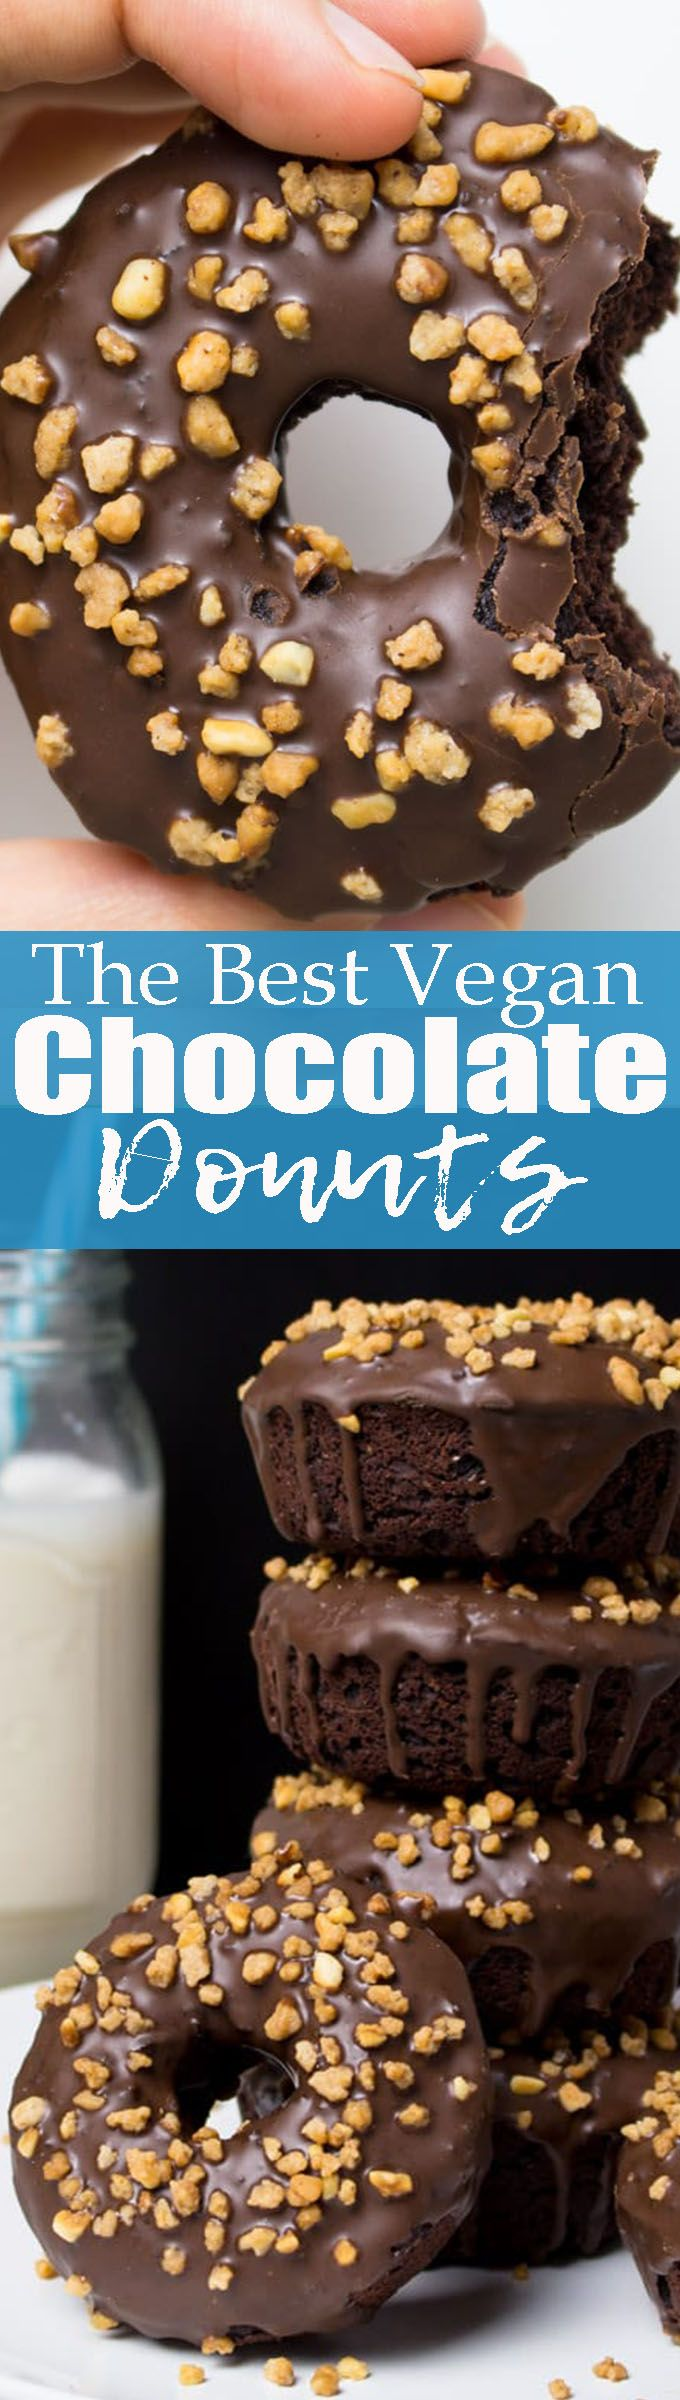 You won't believe that these vegan chocolate donuts with hazelnuts are secretly healthy! They're one of my favorite vegan desserts! <3 Vegan baking can be so easy! | Posted By: DebbieNet.com